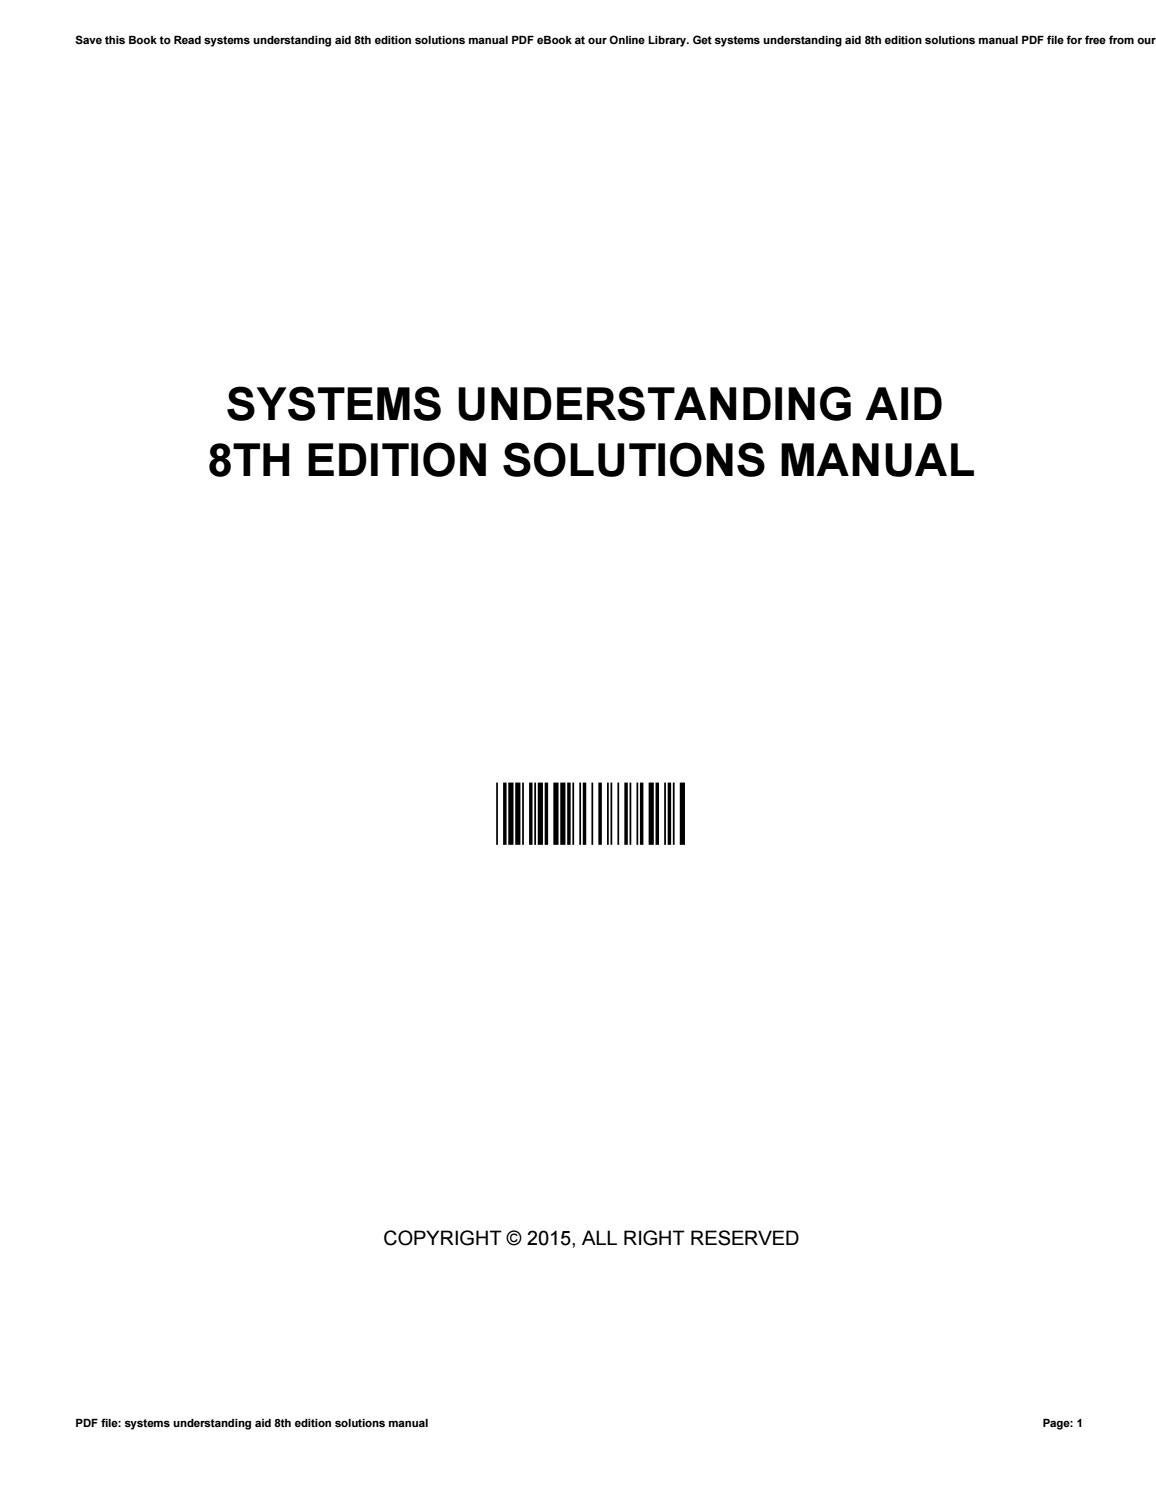 systems understanding aid 8th edition solutions